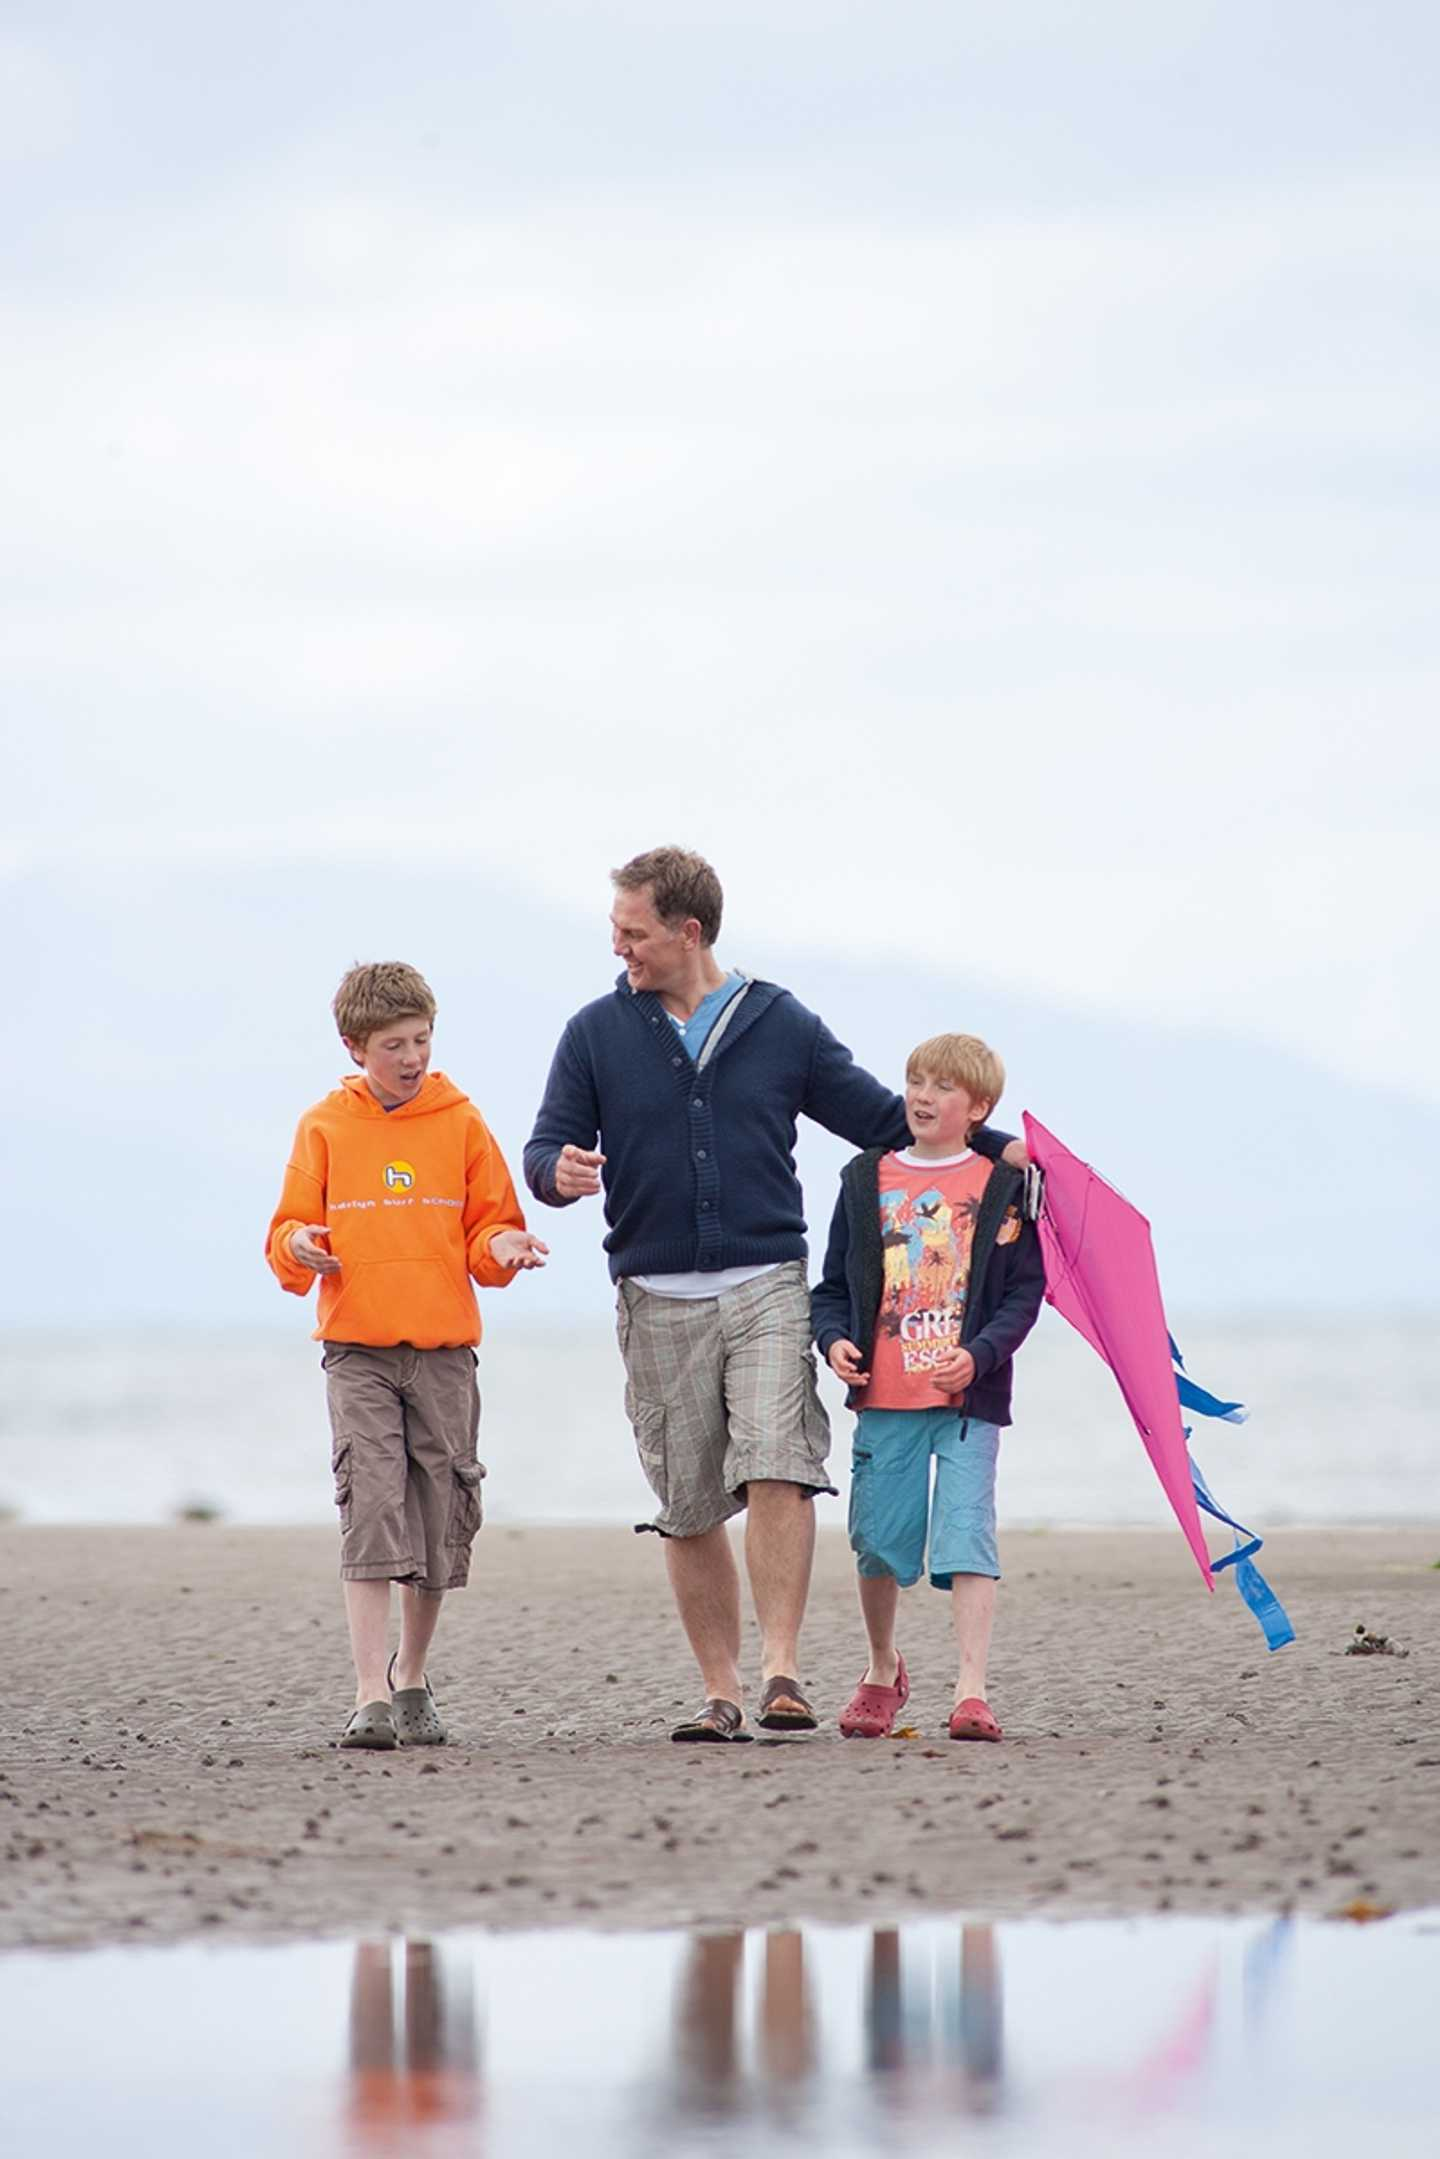 Parent and children flying kites on a beach by Craig Tara, Scotland